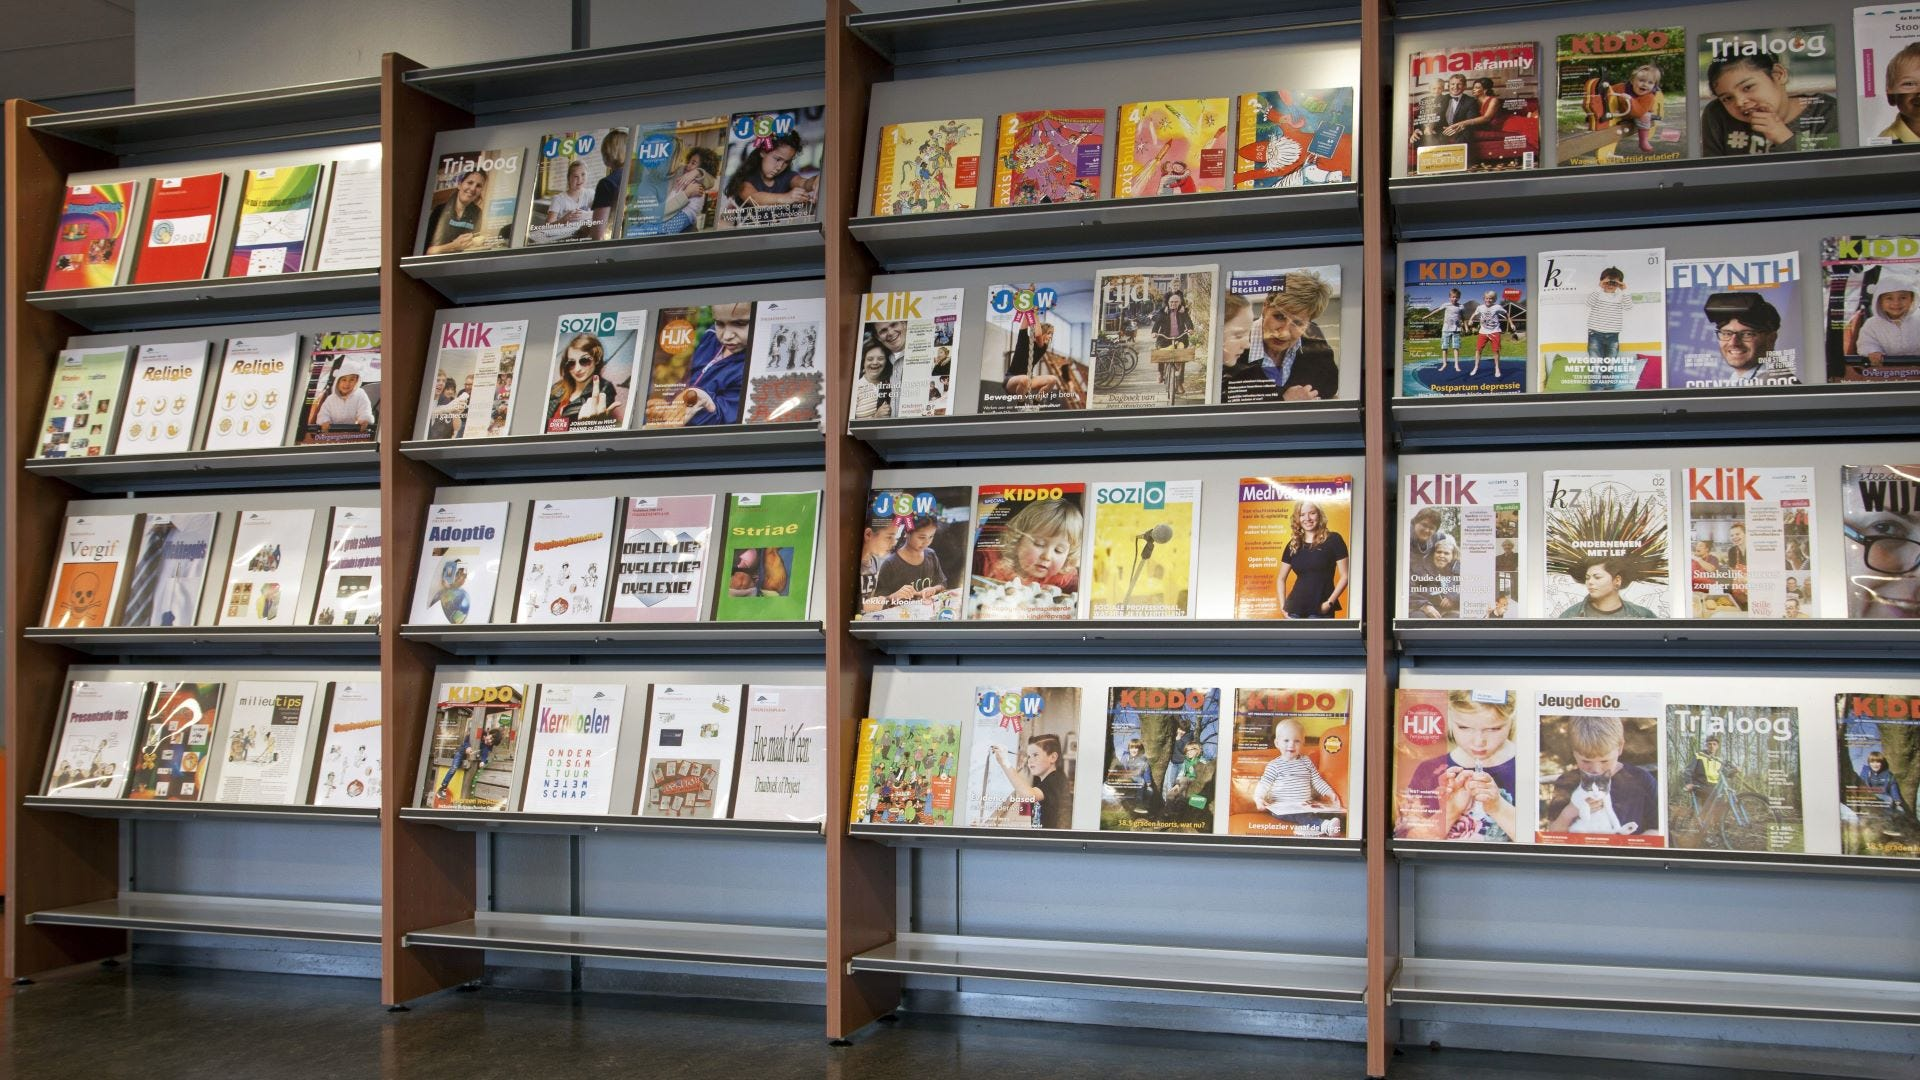 The kids magazine section at a library.